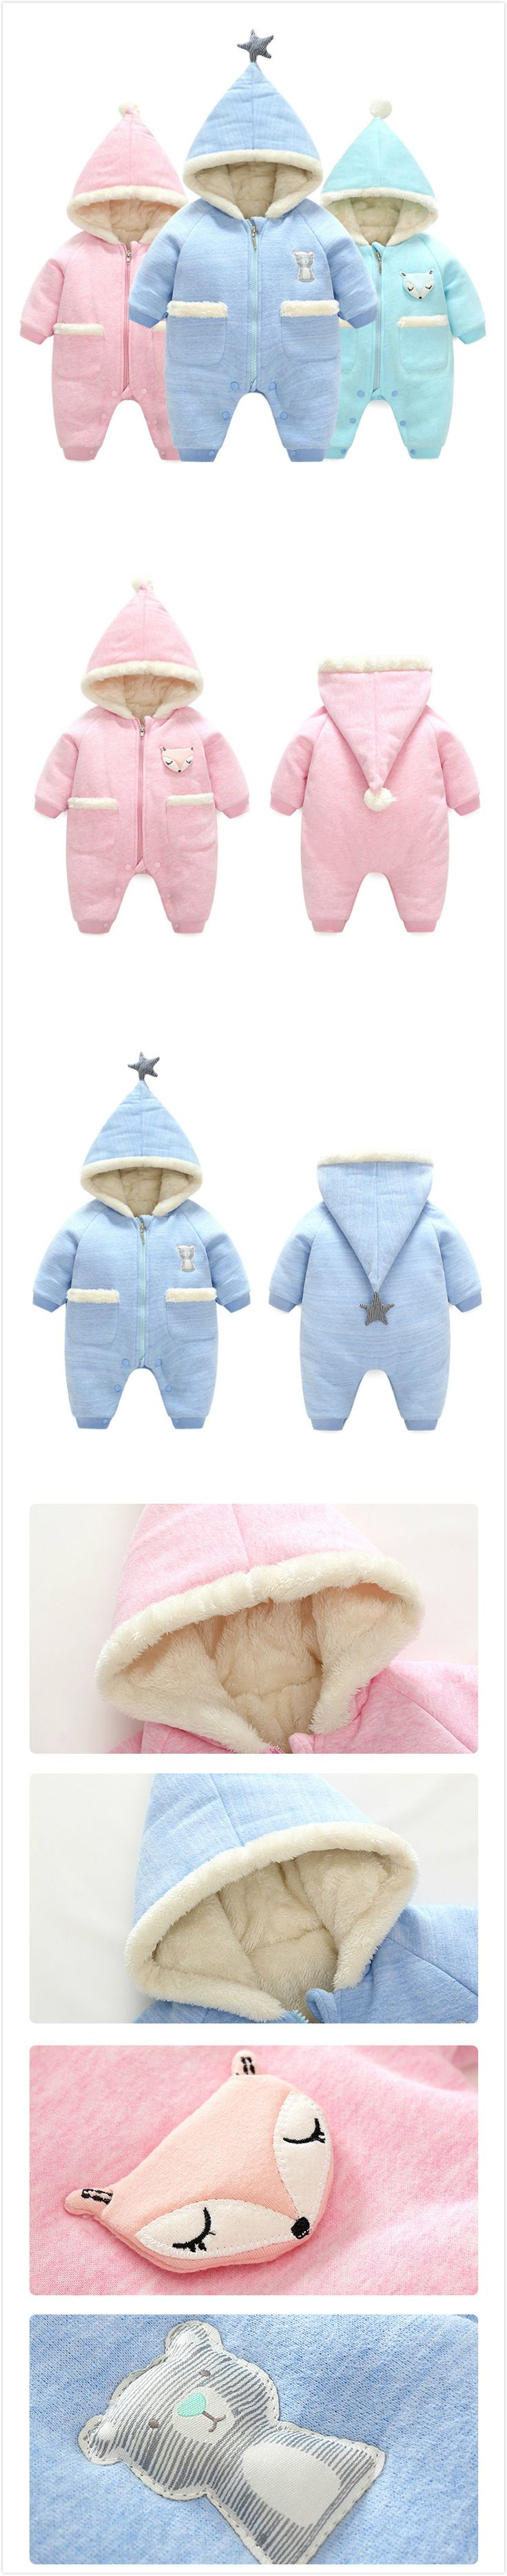 3-24Months Thicker Velvet Baby Boy Girl Winter Warm Hooded Jumpsuit Romper Outfit